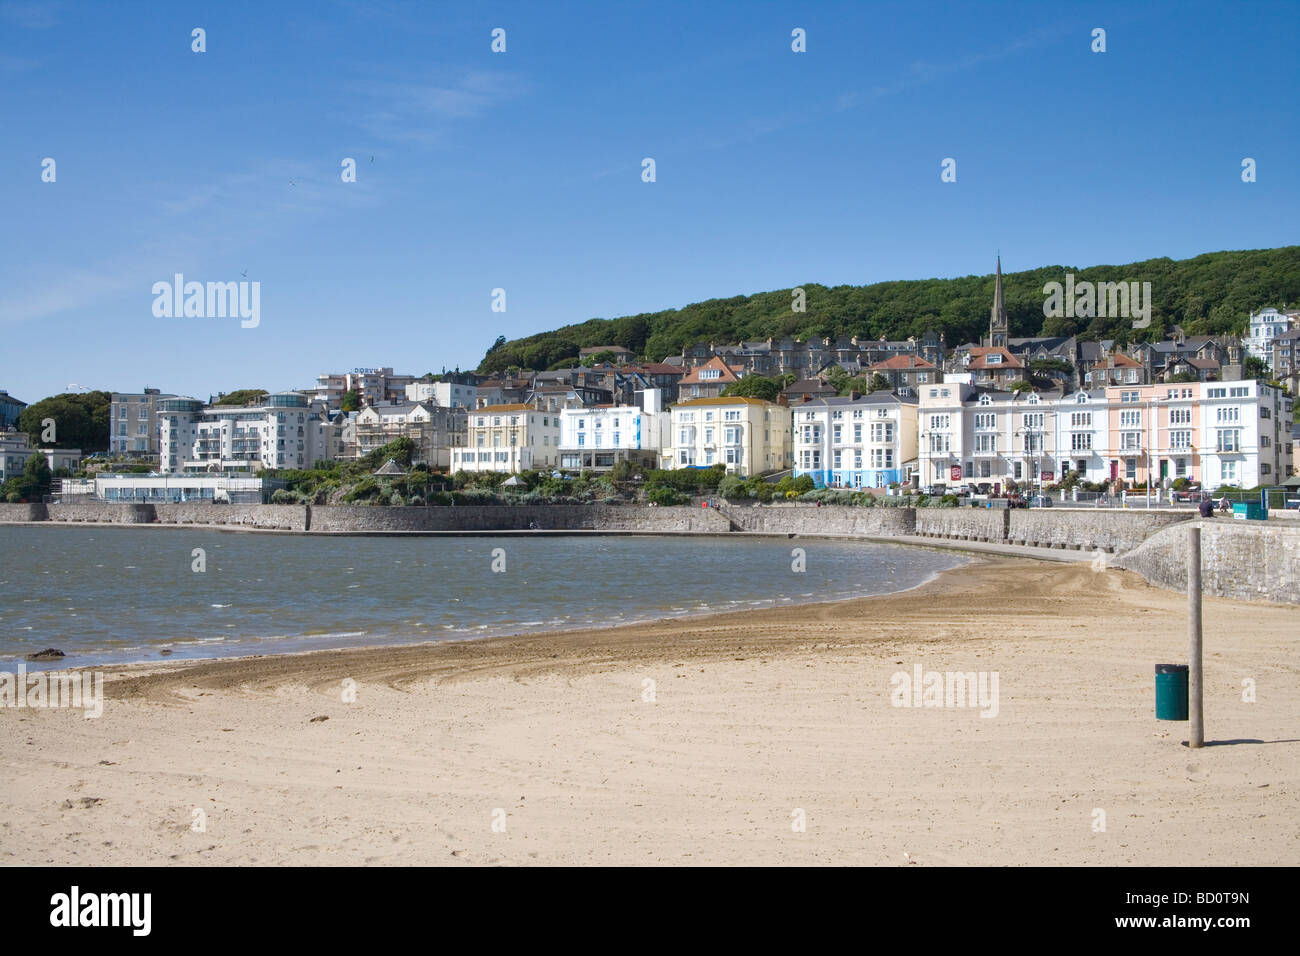 the large beach at Weston super mare  Somerset - Stock Image